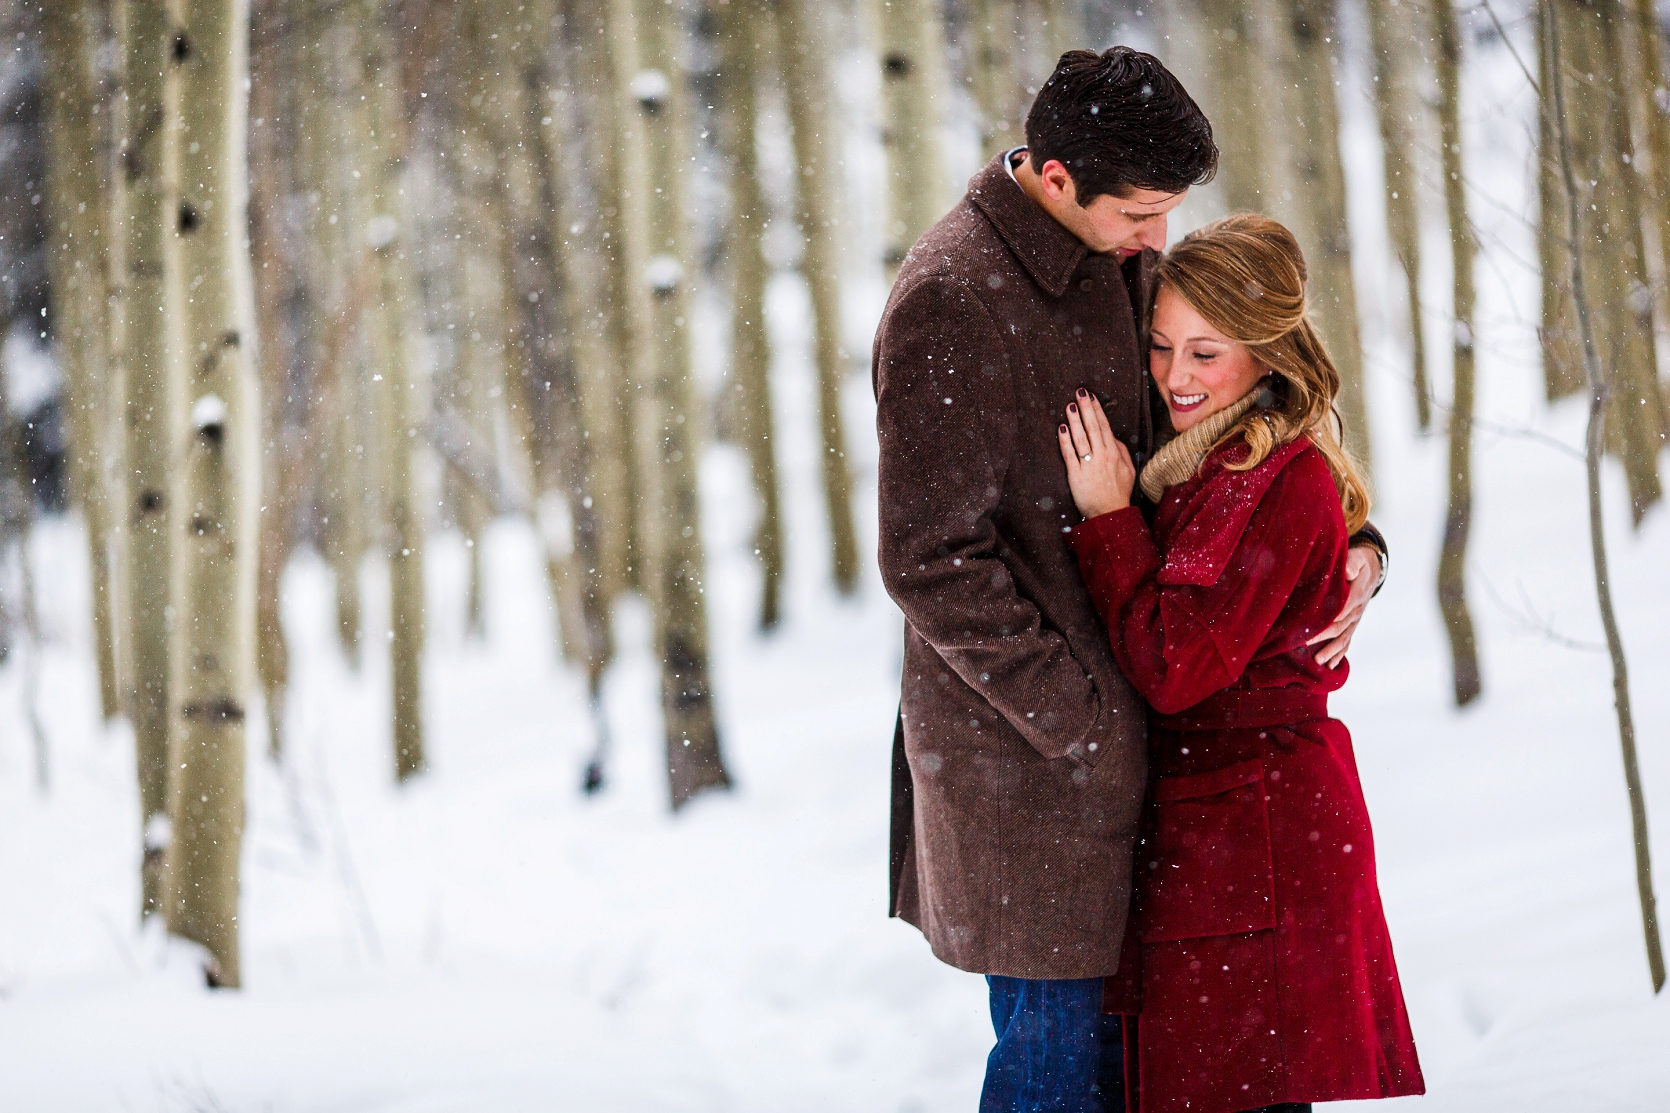 Winter_Vail_Engagement_0003a